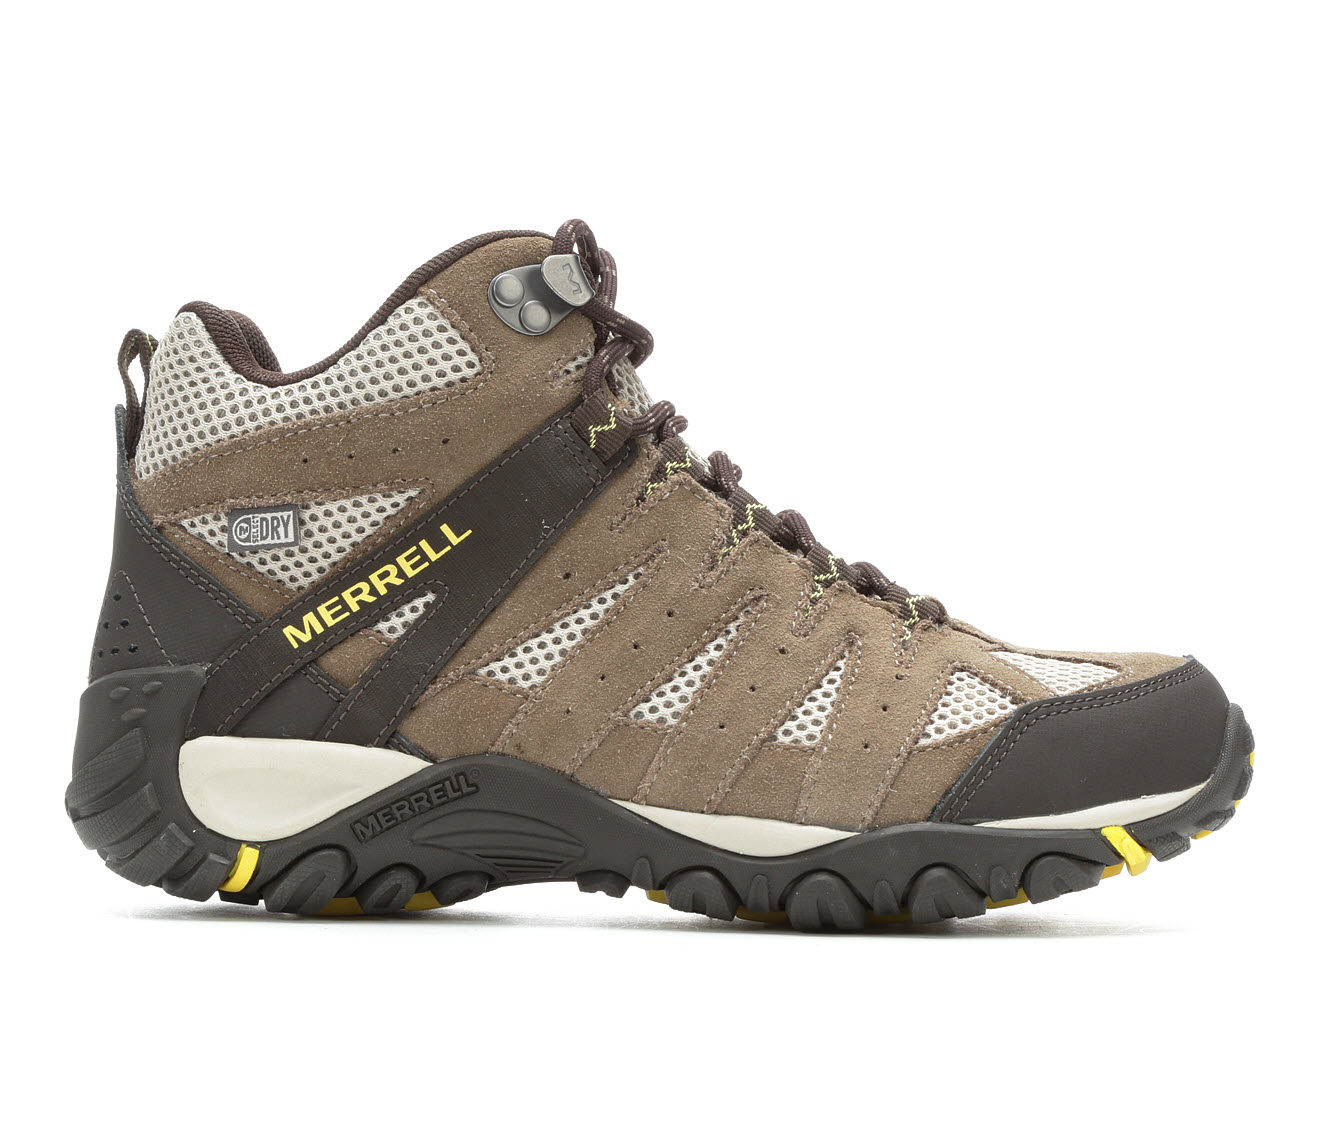 Merrell Accentor 2 mid WP Women's Shoe (Brown Leather)